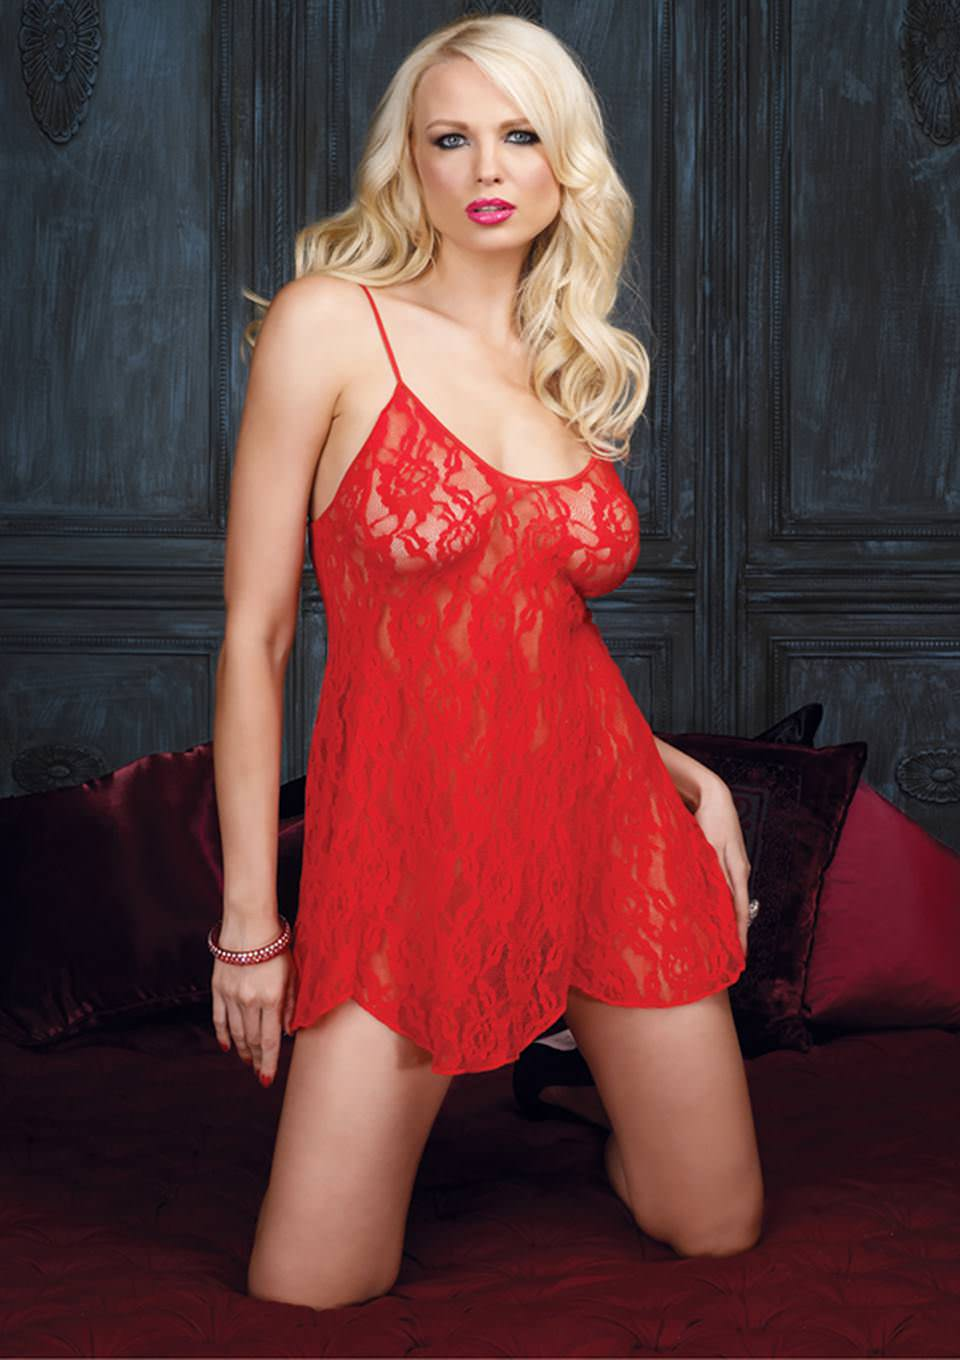 Leg Avenue Rose Lace Flair Rød Chemise Med G-Streng